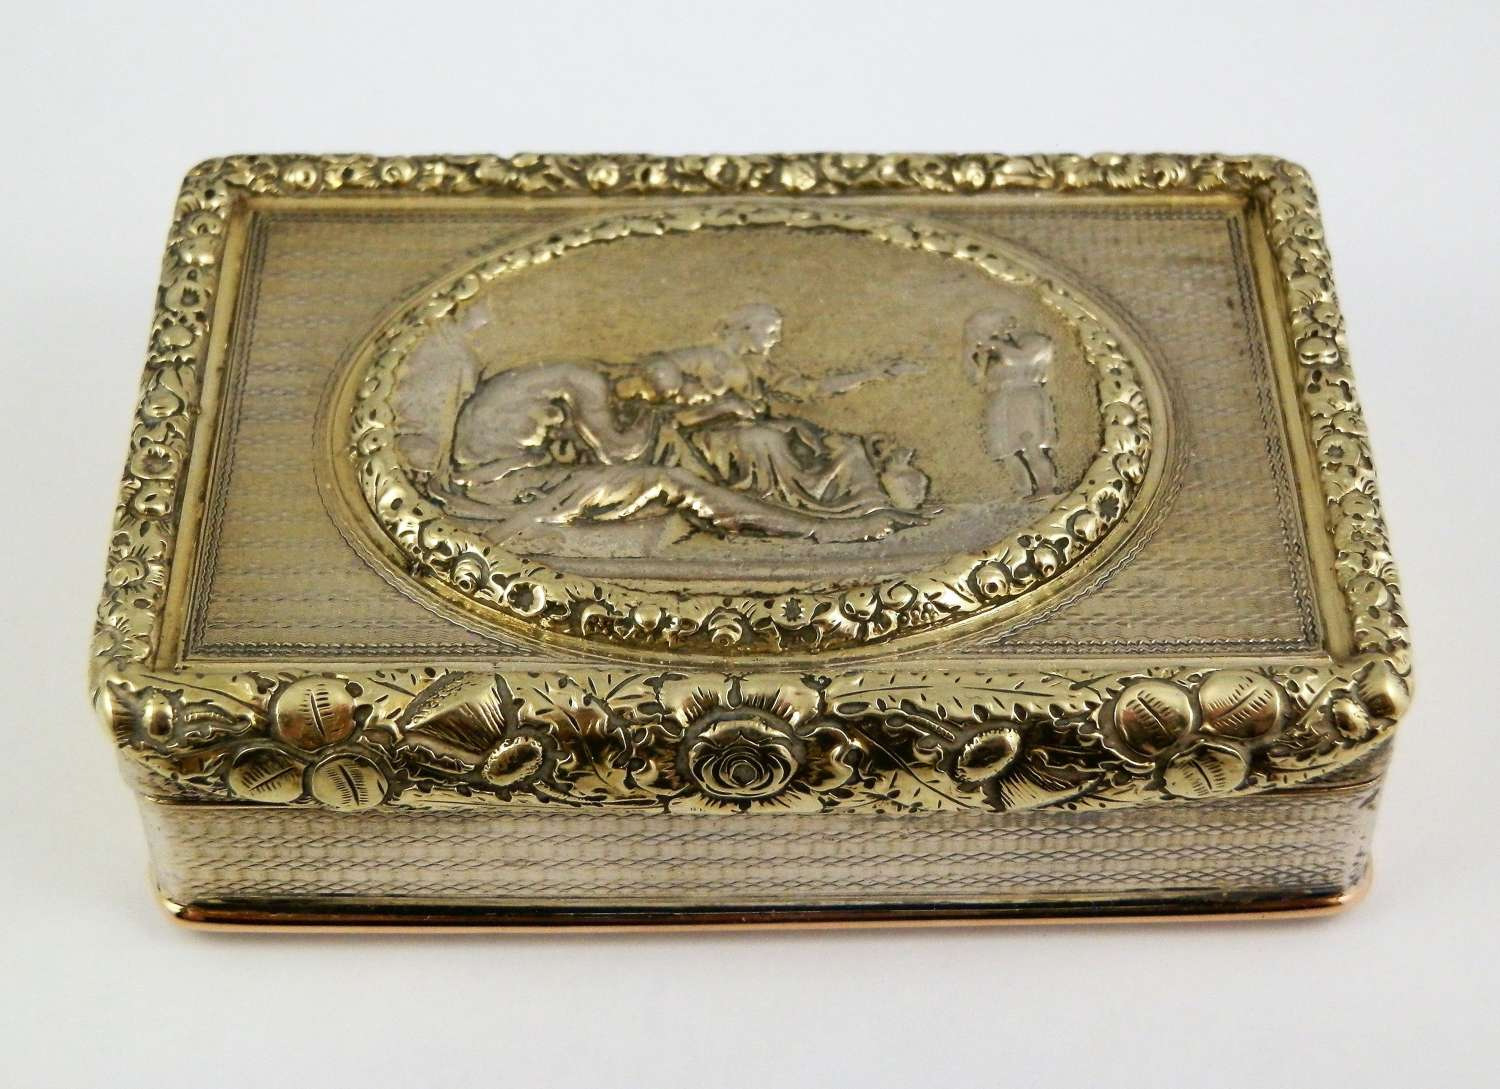 George III silver gilt cast top snuff box, London 1818